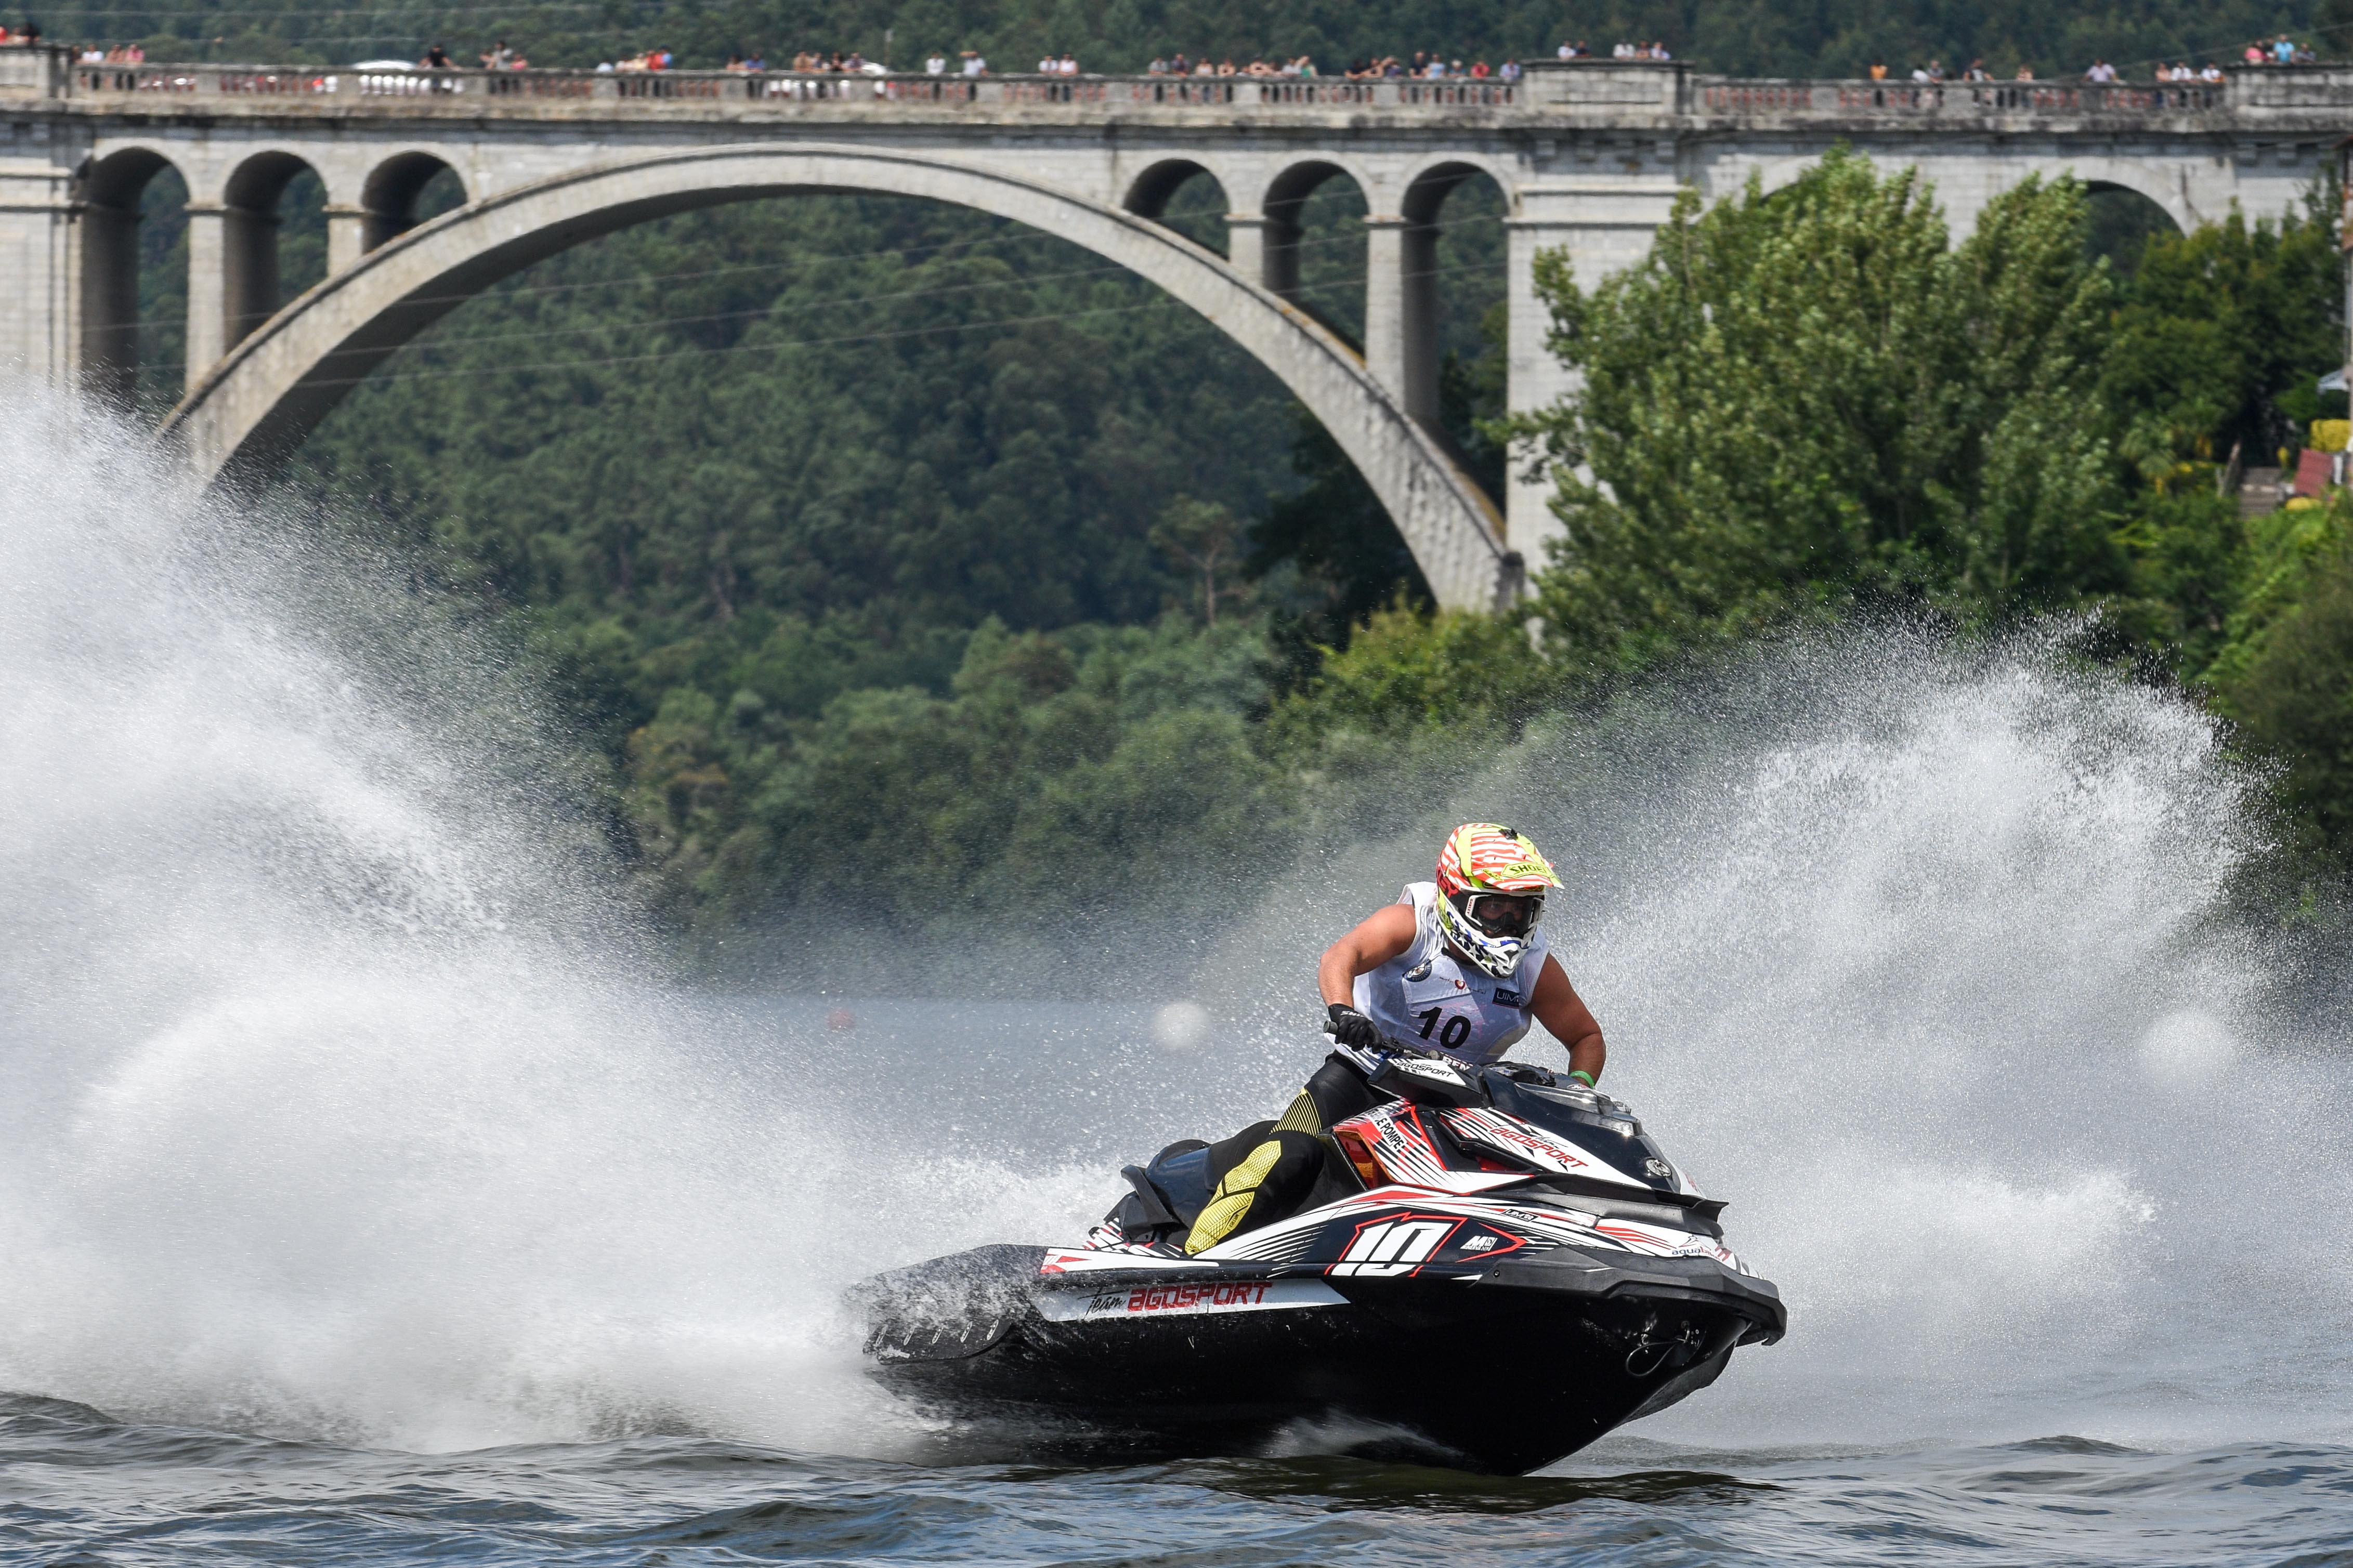 AQUABIKE PROMOTION CONFIRM THREE EVENT UIM-ABP AQUABIKE EUROPEAN CONTINENTAL CHAMPIONSHIP